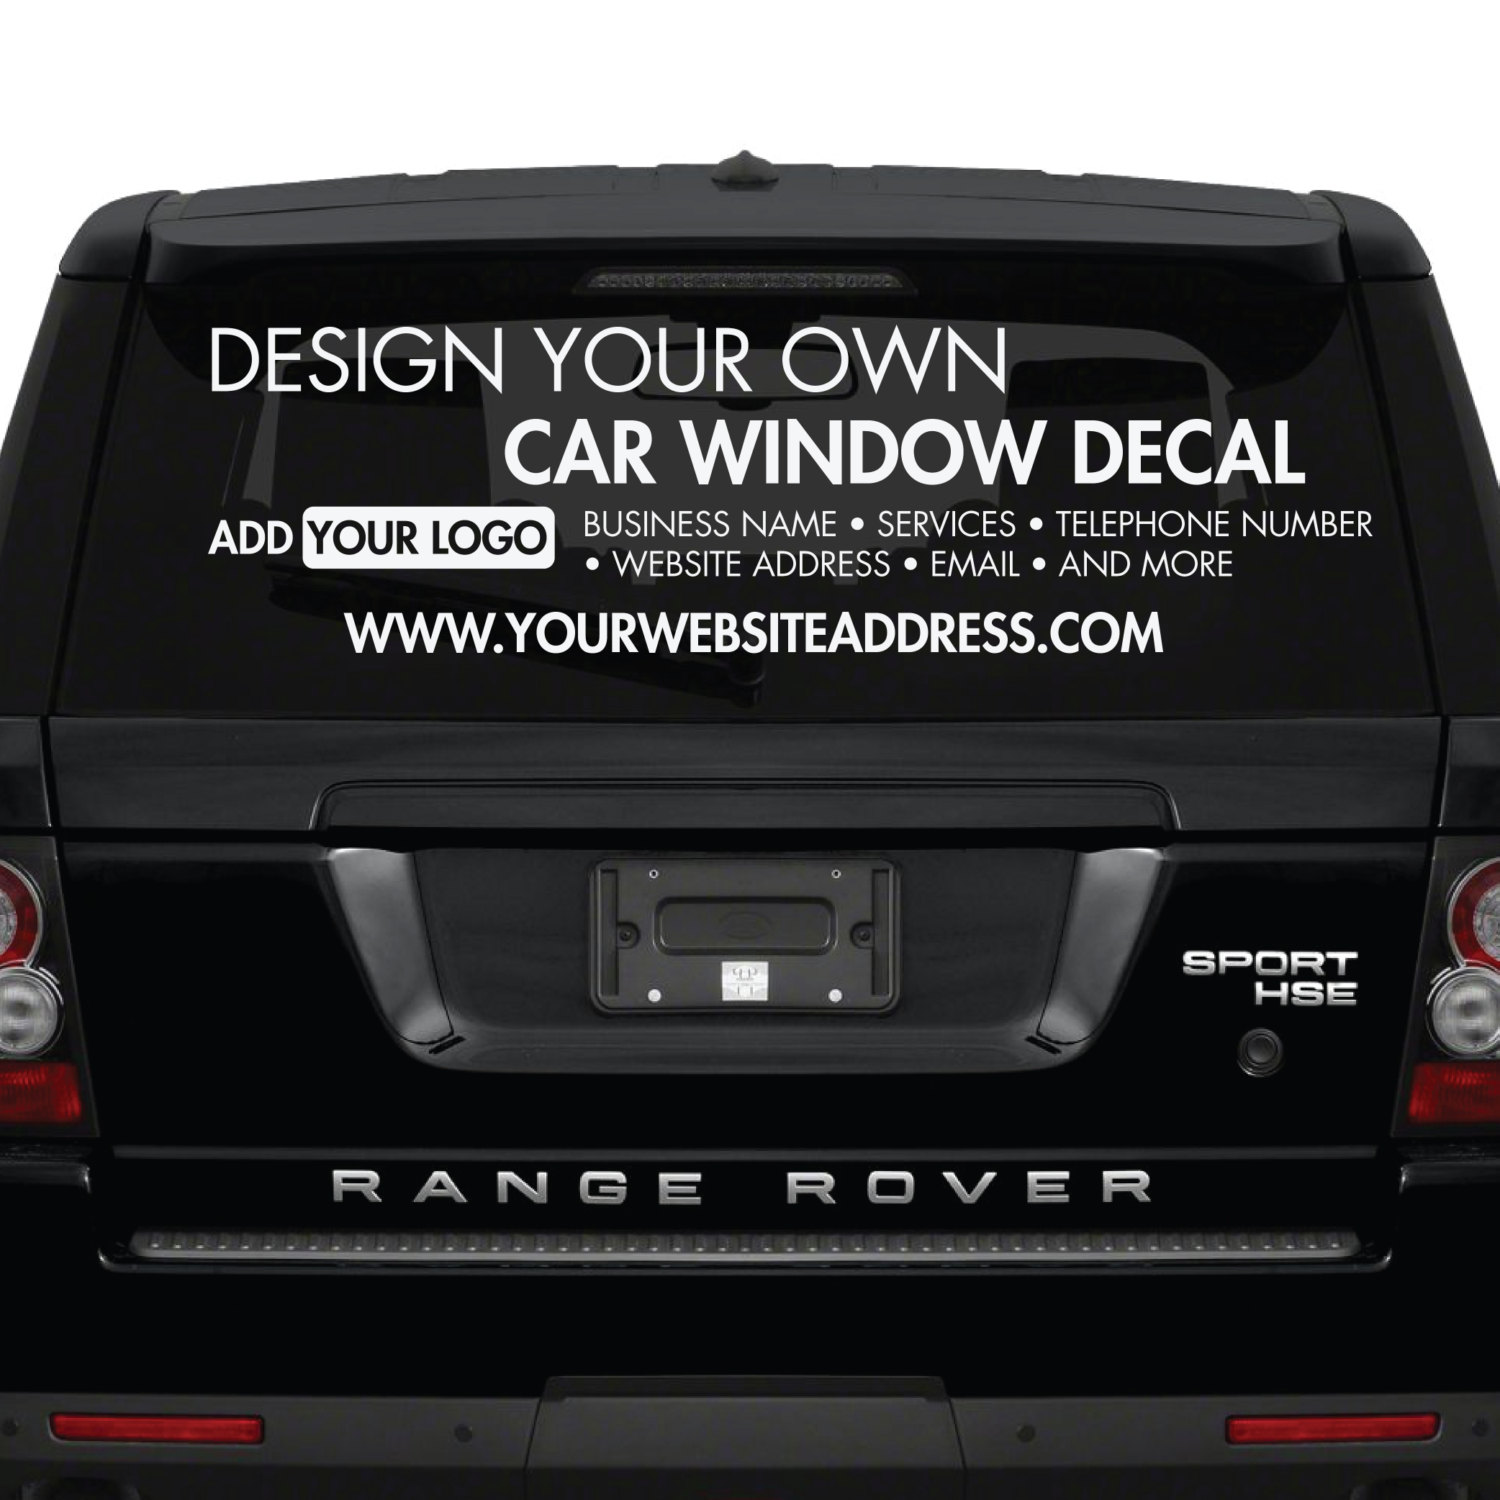 Car Window Sticker Design Your Own Custom Made Personalised - Car window decals for business uk